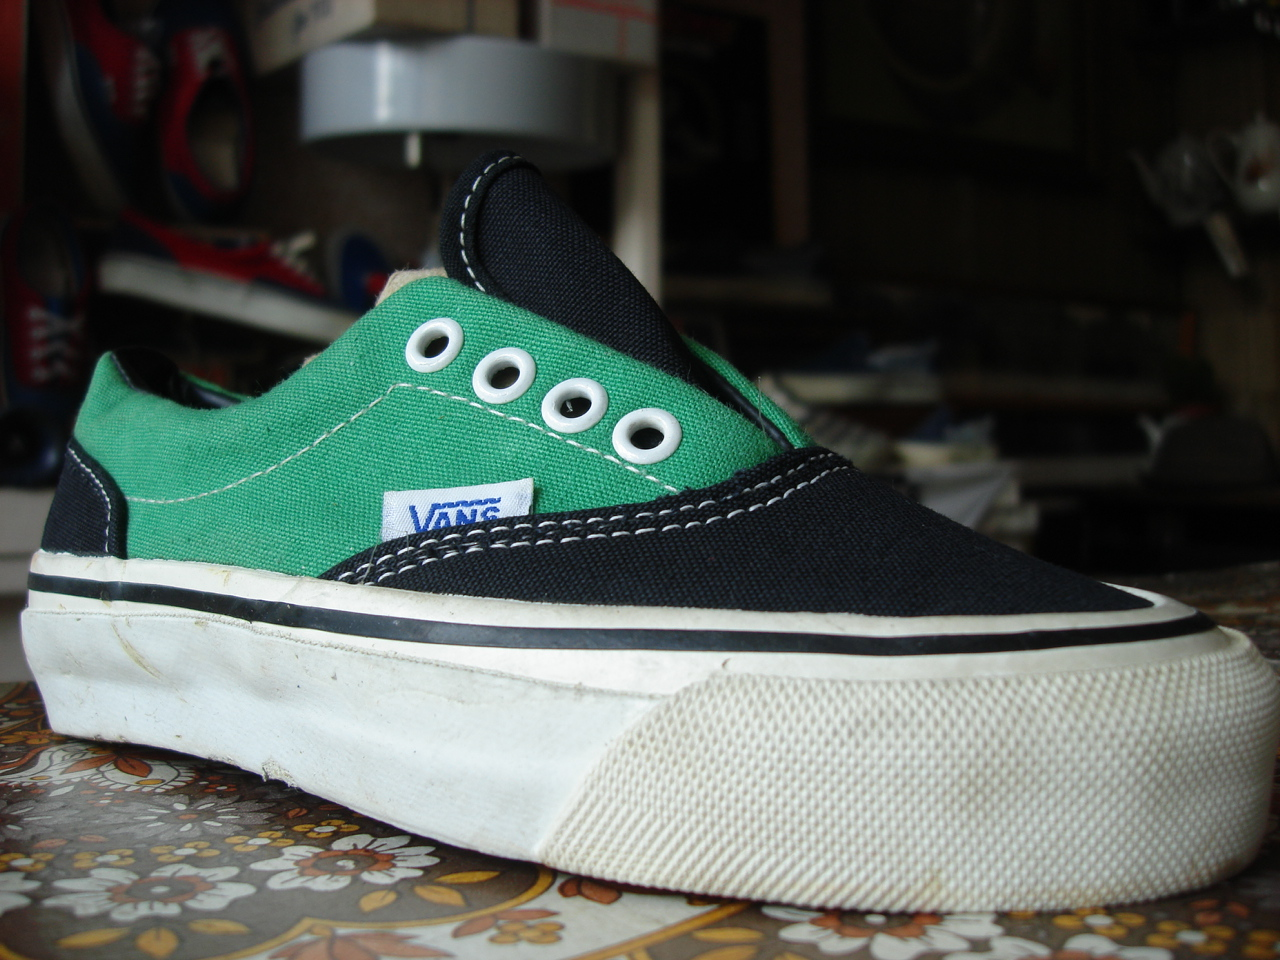 ebbfffbd9d798b theothersideofthepillow  vintage KIDS VANS 2-tone black green ERA style  95  MADE IN USA 80 s dead stock OFF THE WALL skate shoes US2 youth